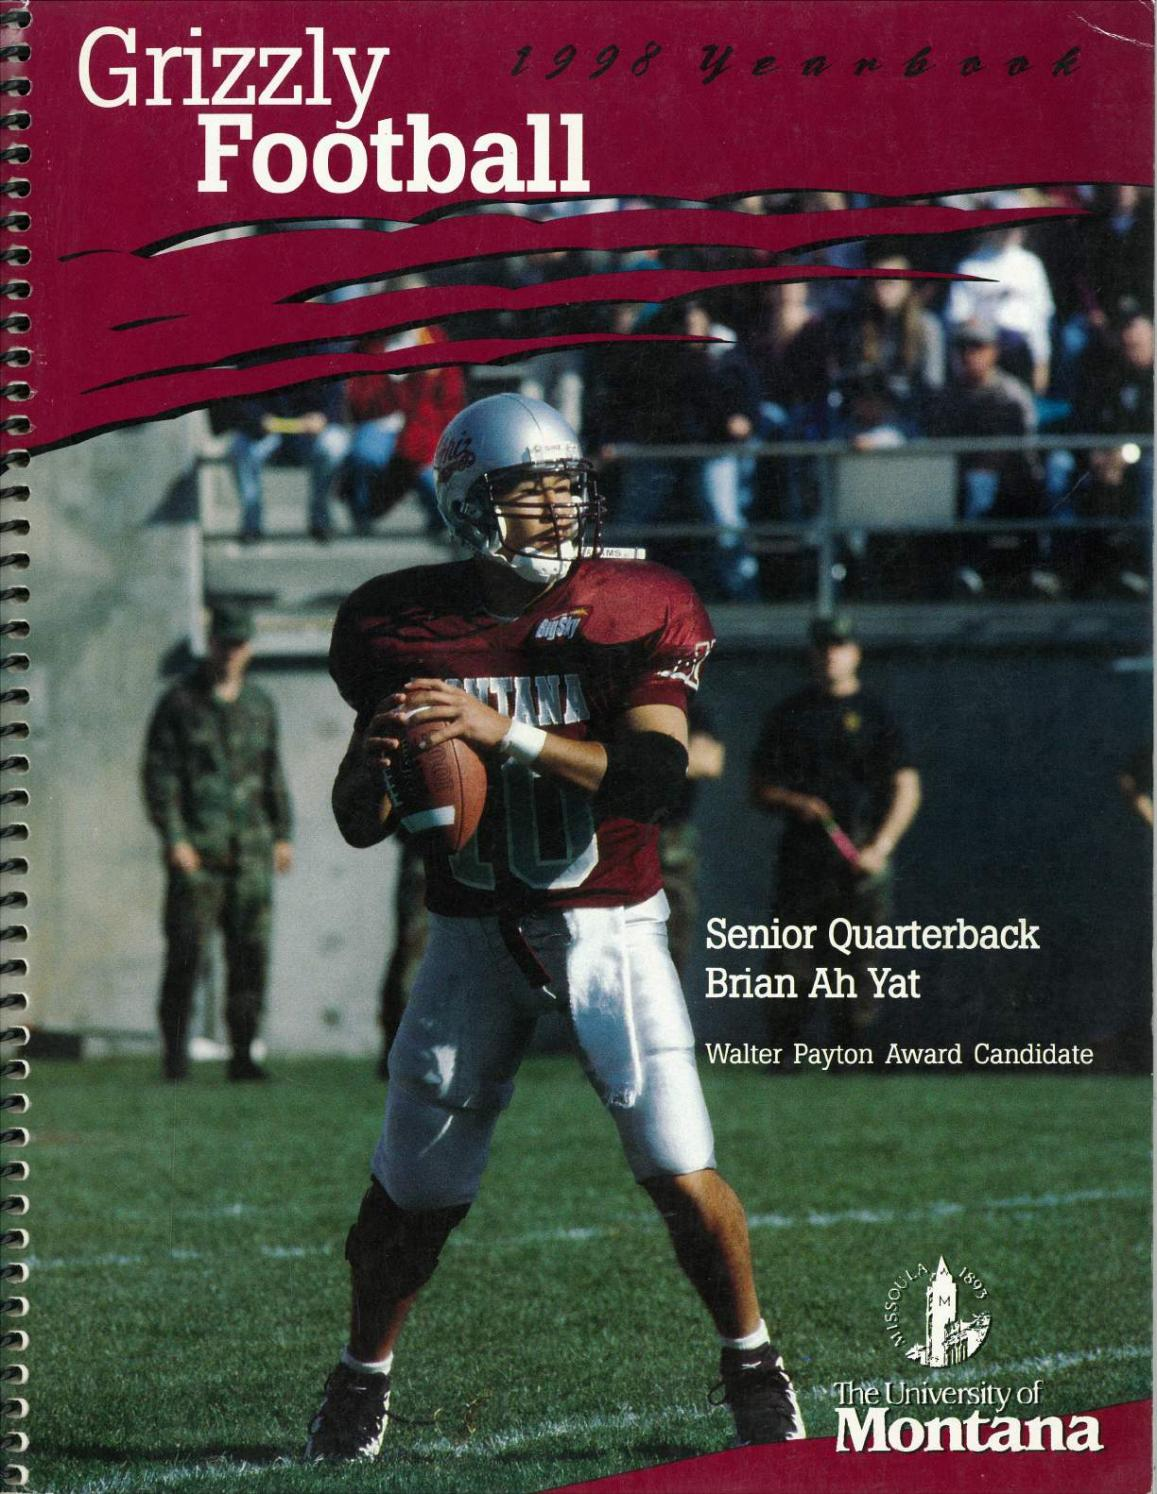 bcaf0613f9b 1998 Football Media Guide by University of Montana Athletics - issuu